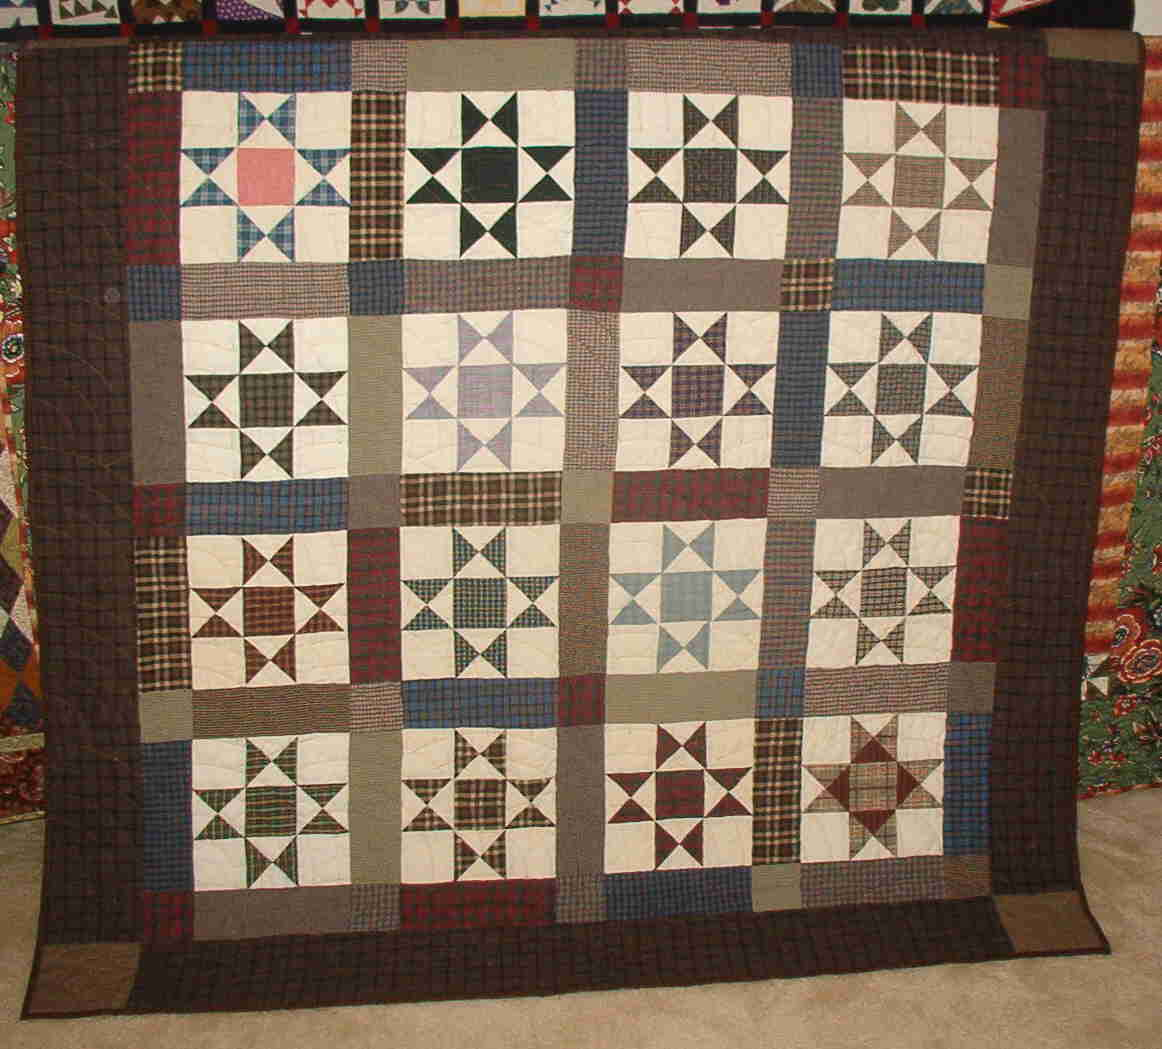 Knitting Quilt Patterns : Quilt patterns knitting gallery